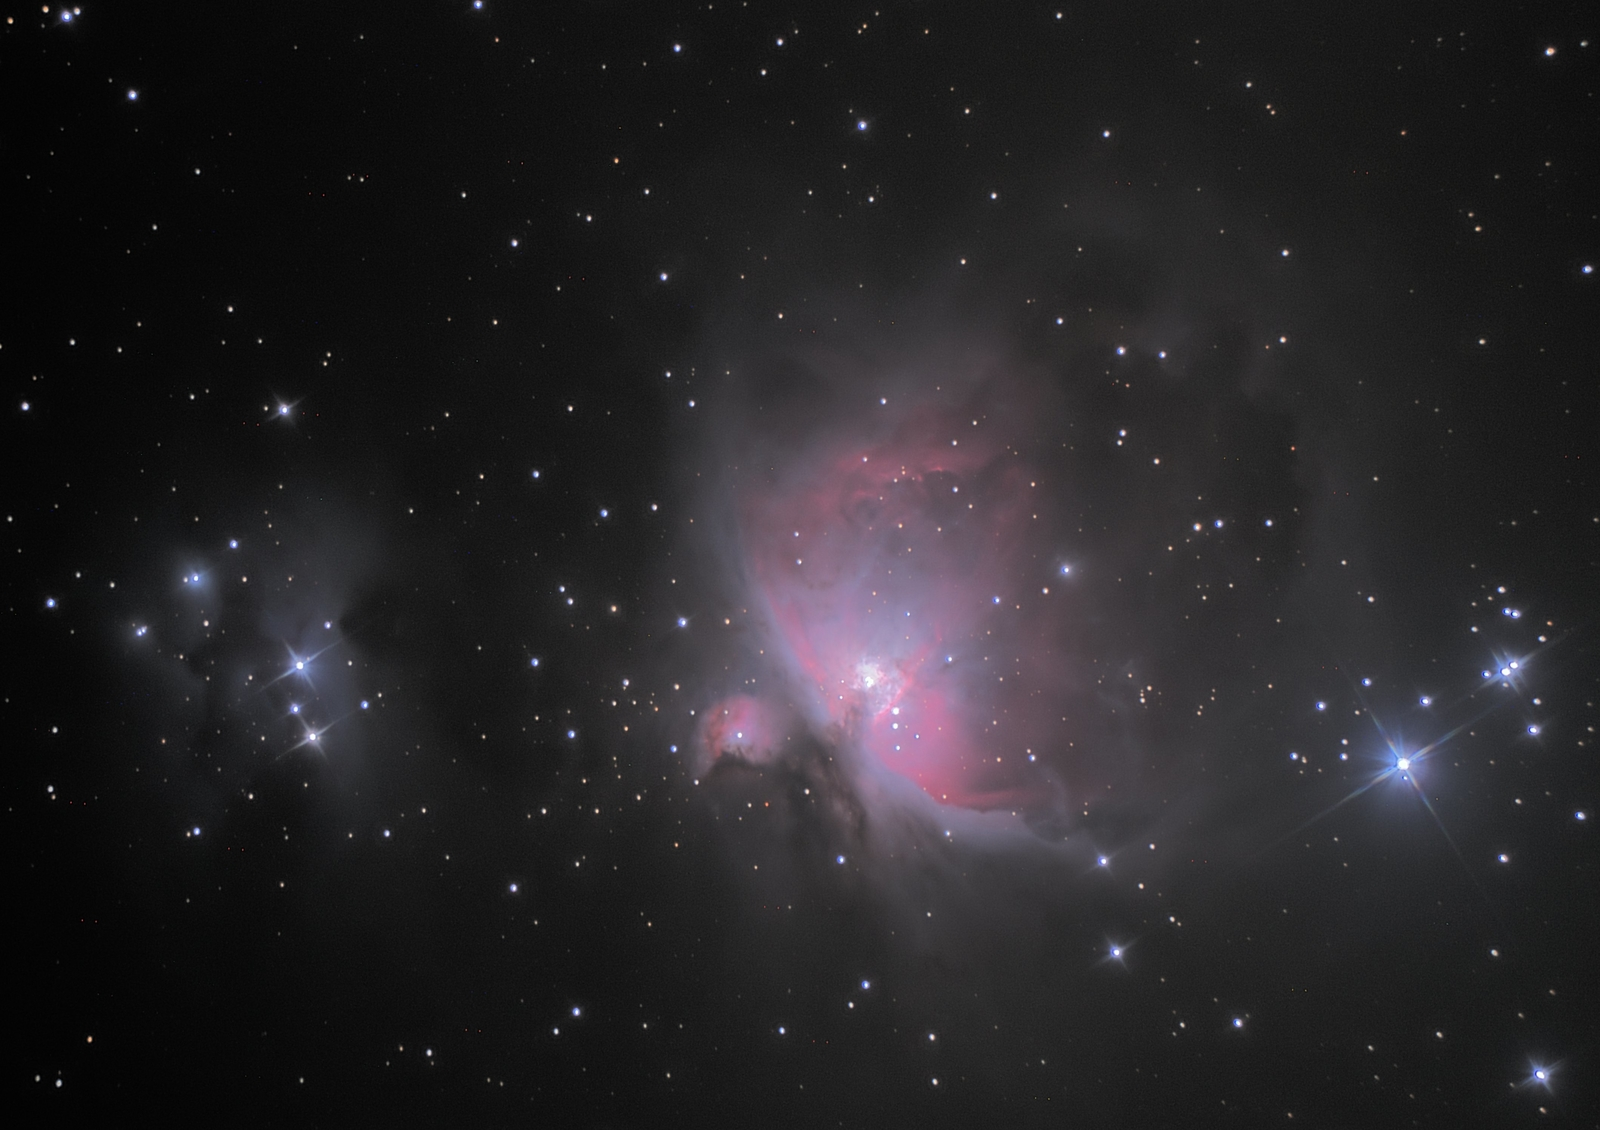 The great Orion nebula (M42) with De Mairan and Running man